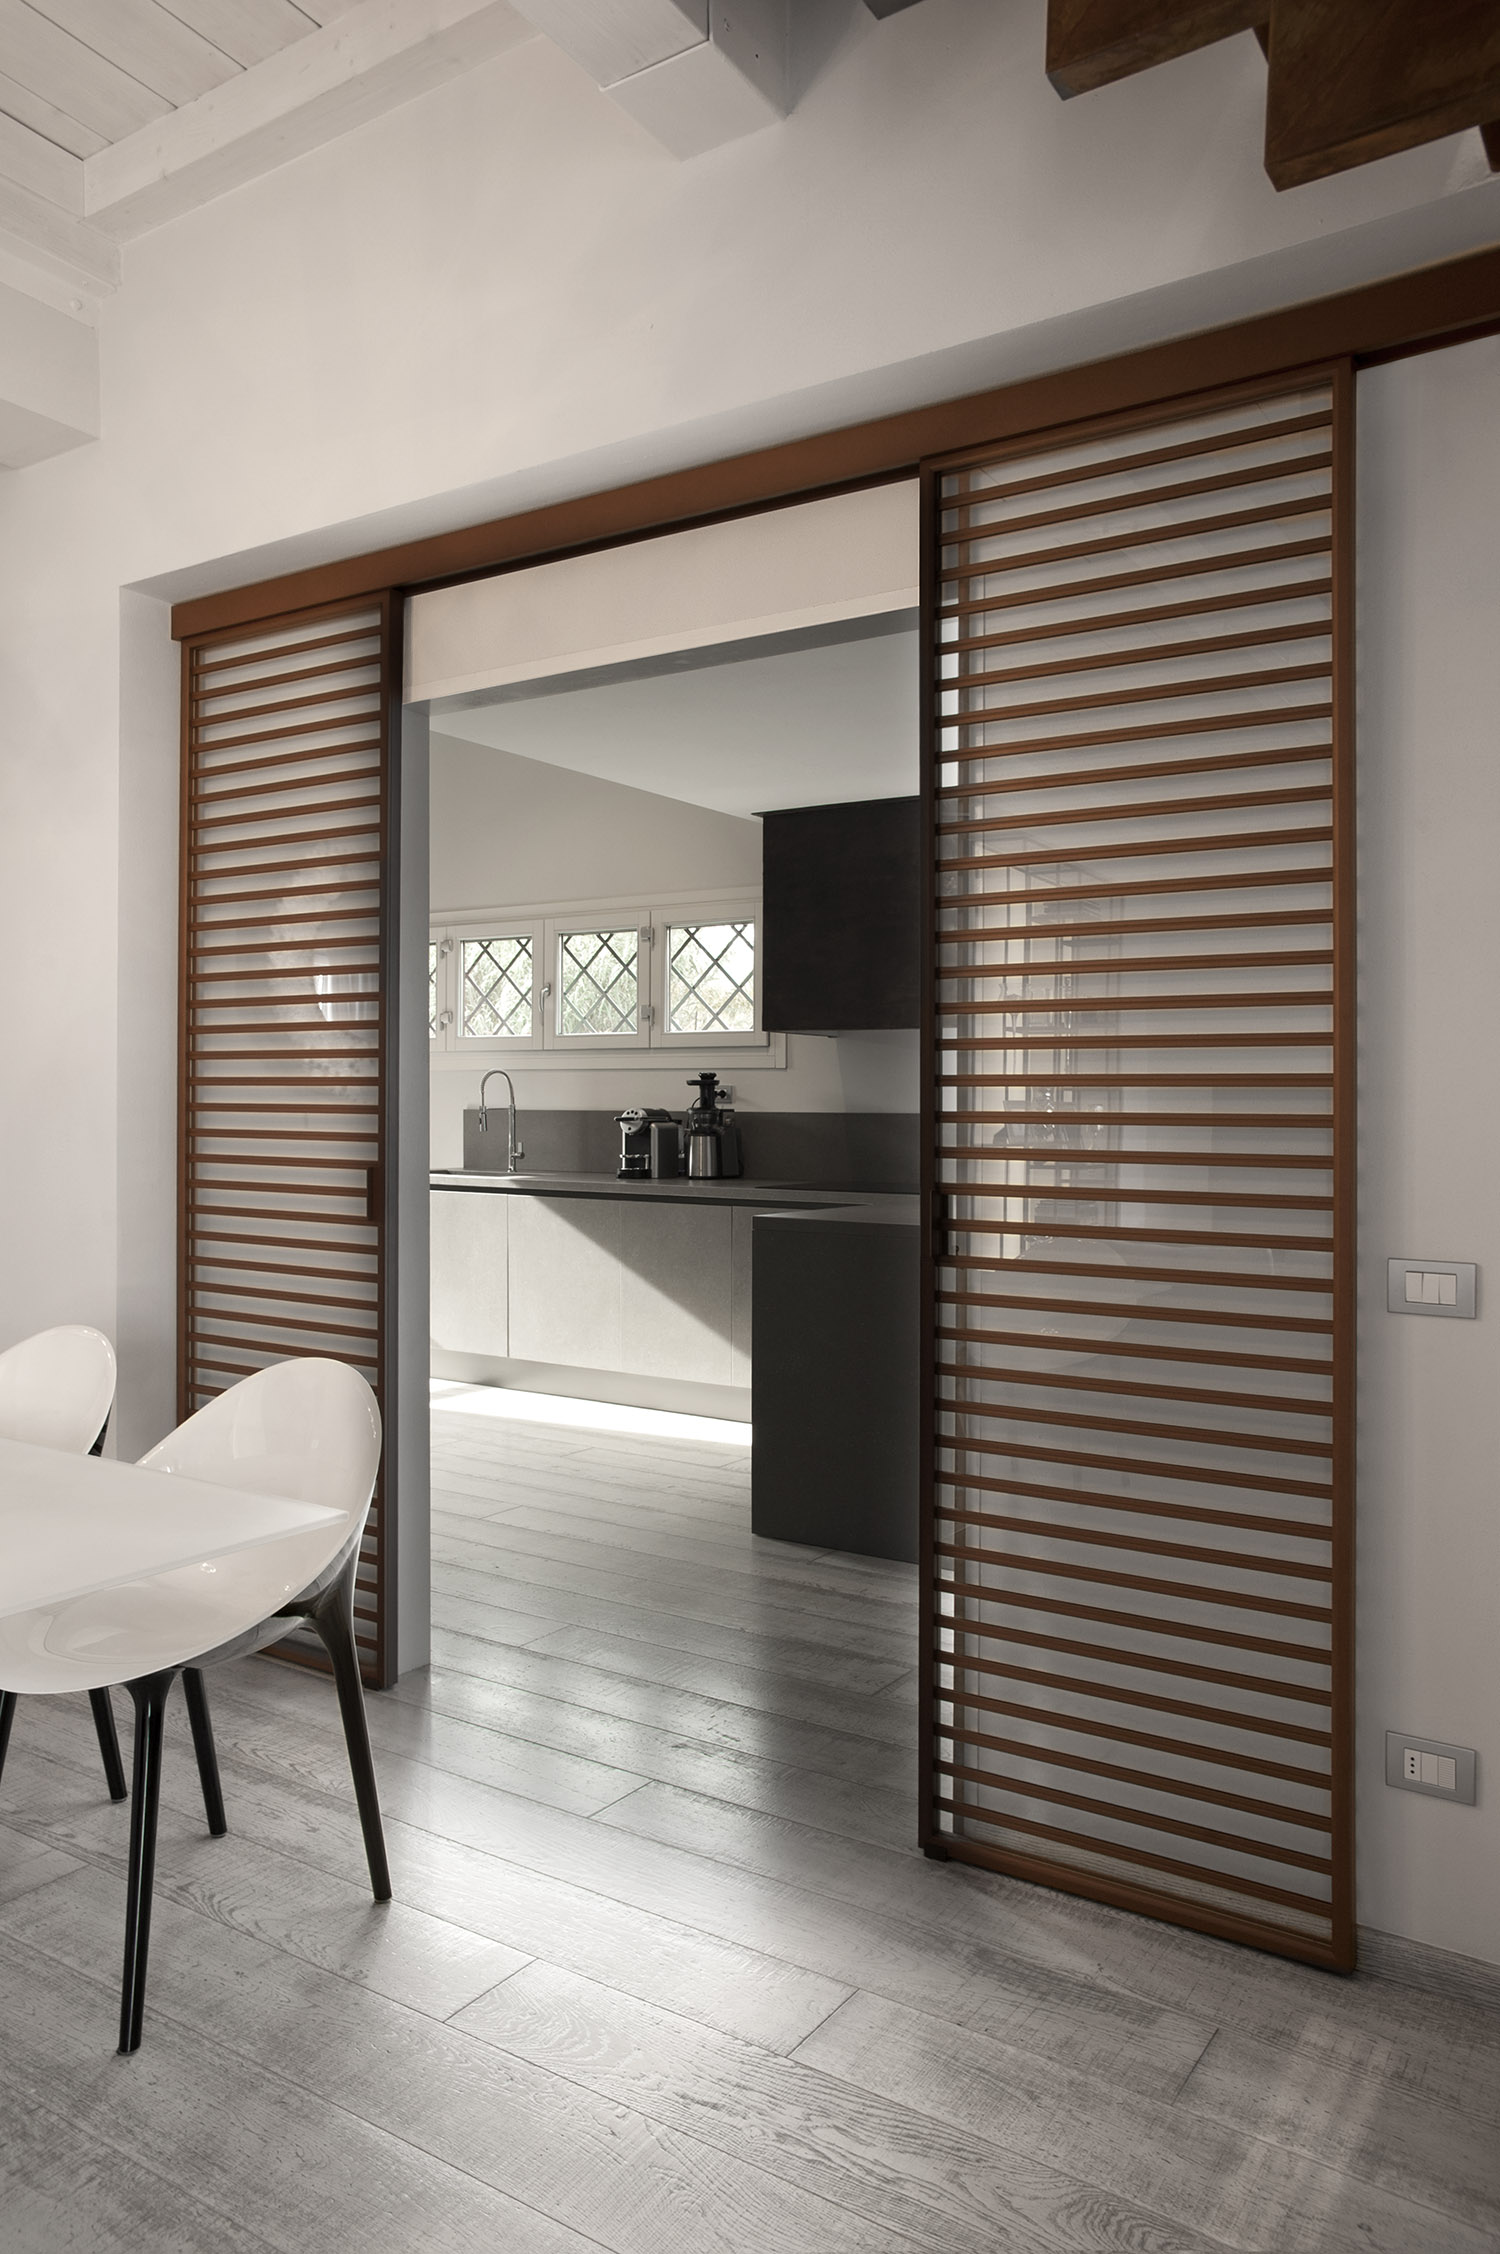 Access to the bedroom area is given through a sliding - Porte per cucina ...